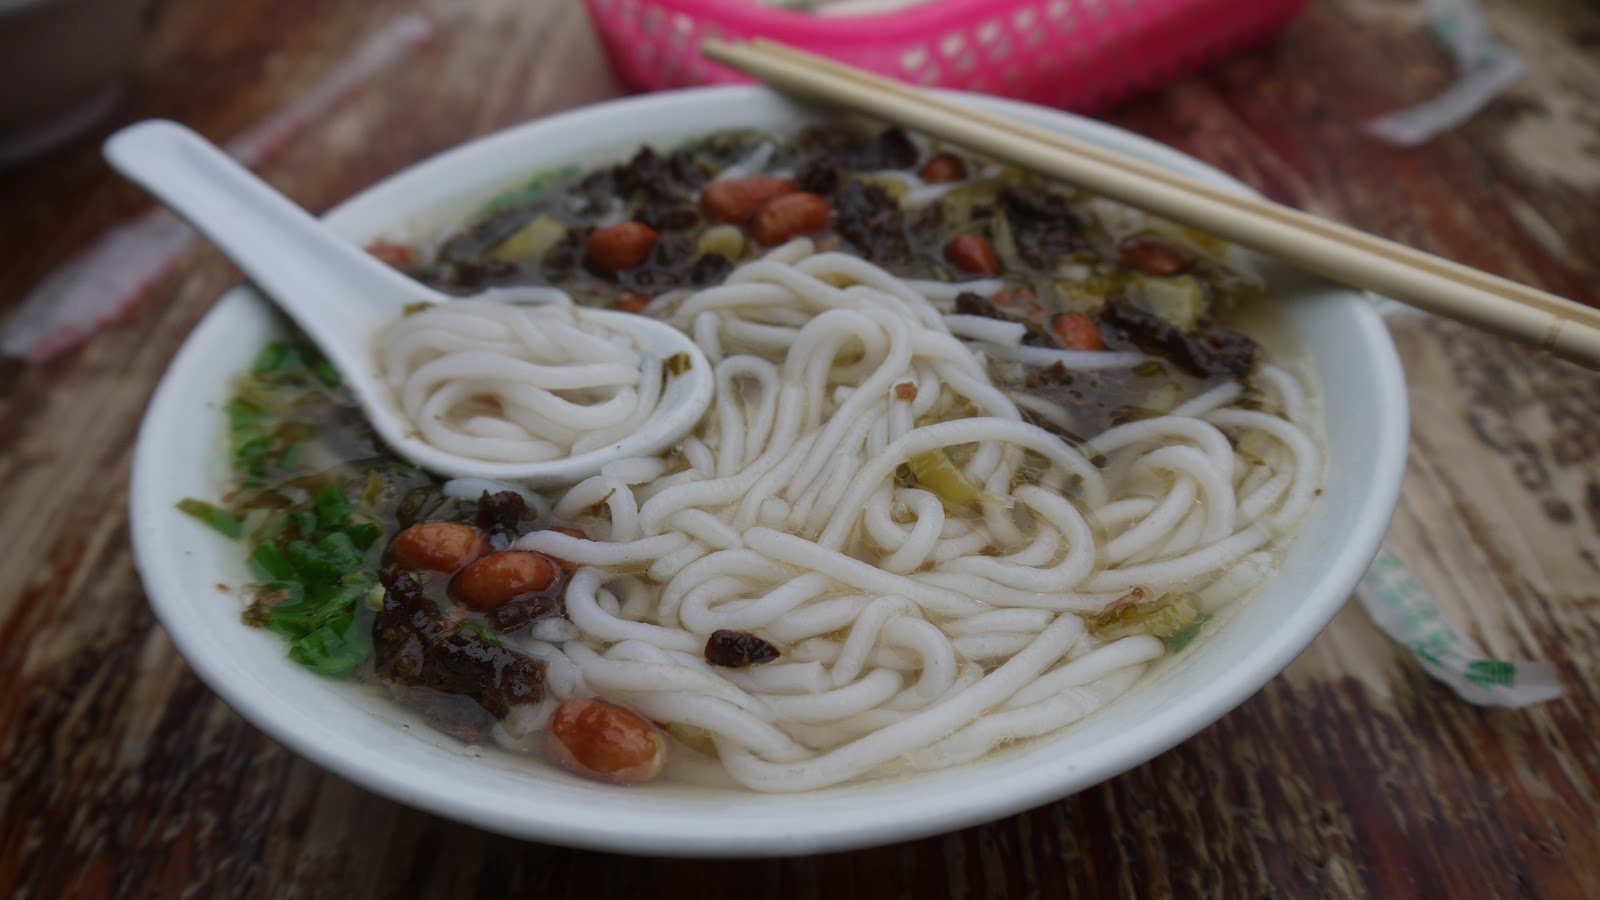 A generous serving of Baoluo noodles.